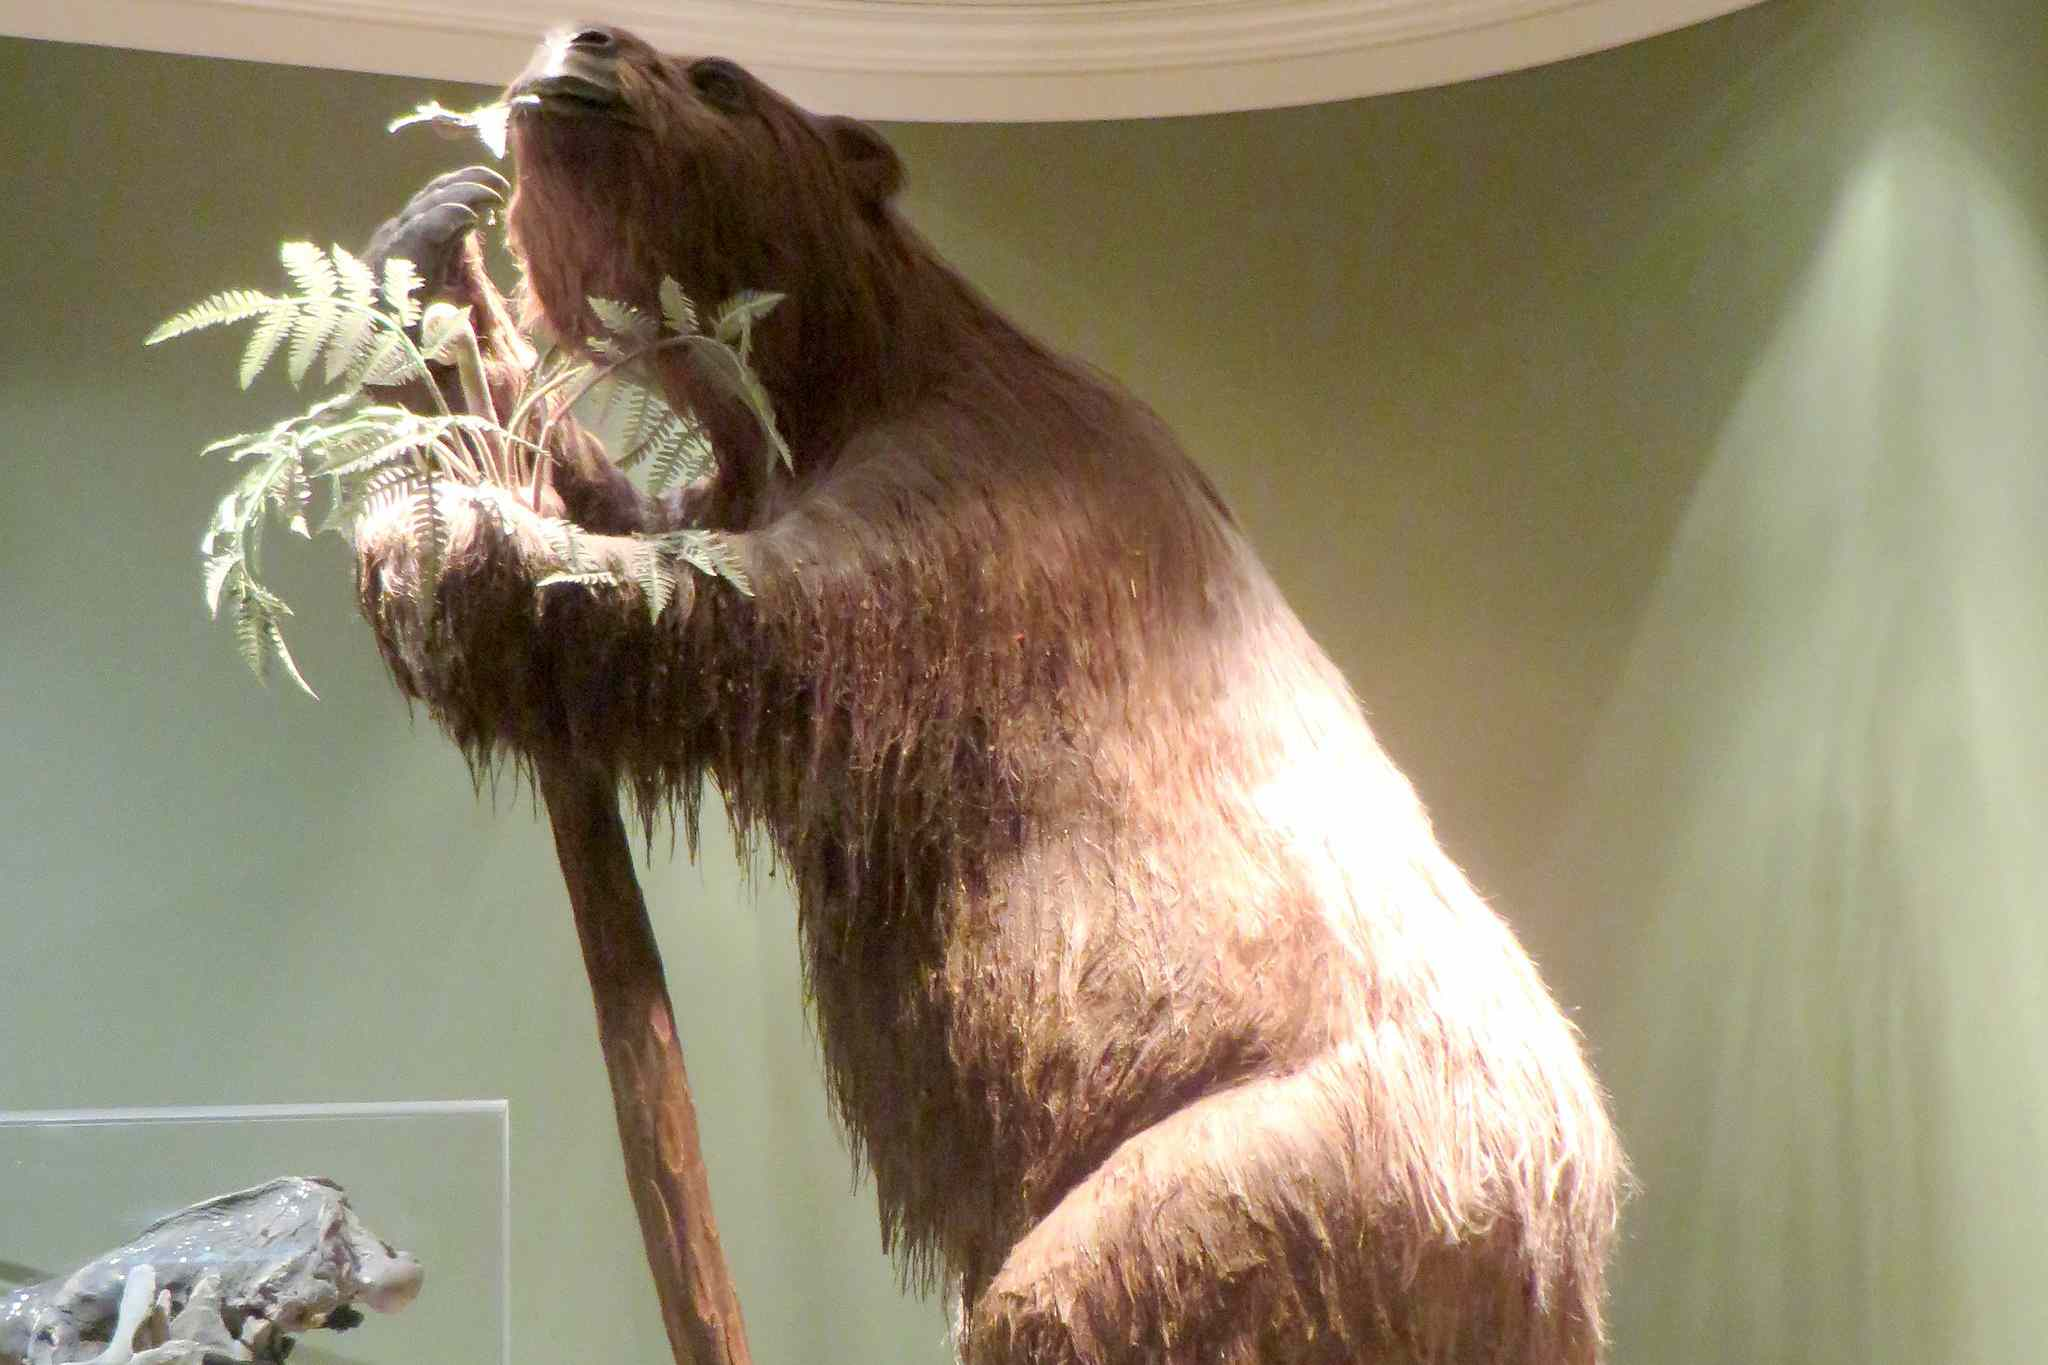 model of a giant ground sloth at the Fernbank Museum. Extremely large shaggy brown bear like animal towers over palm tree and almost touches the ceiling of the museum ceiling